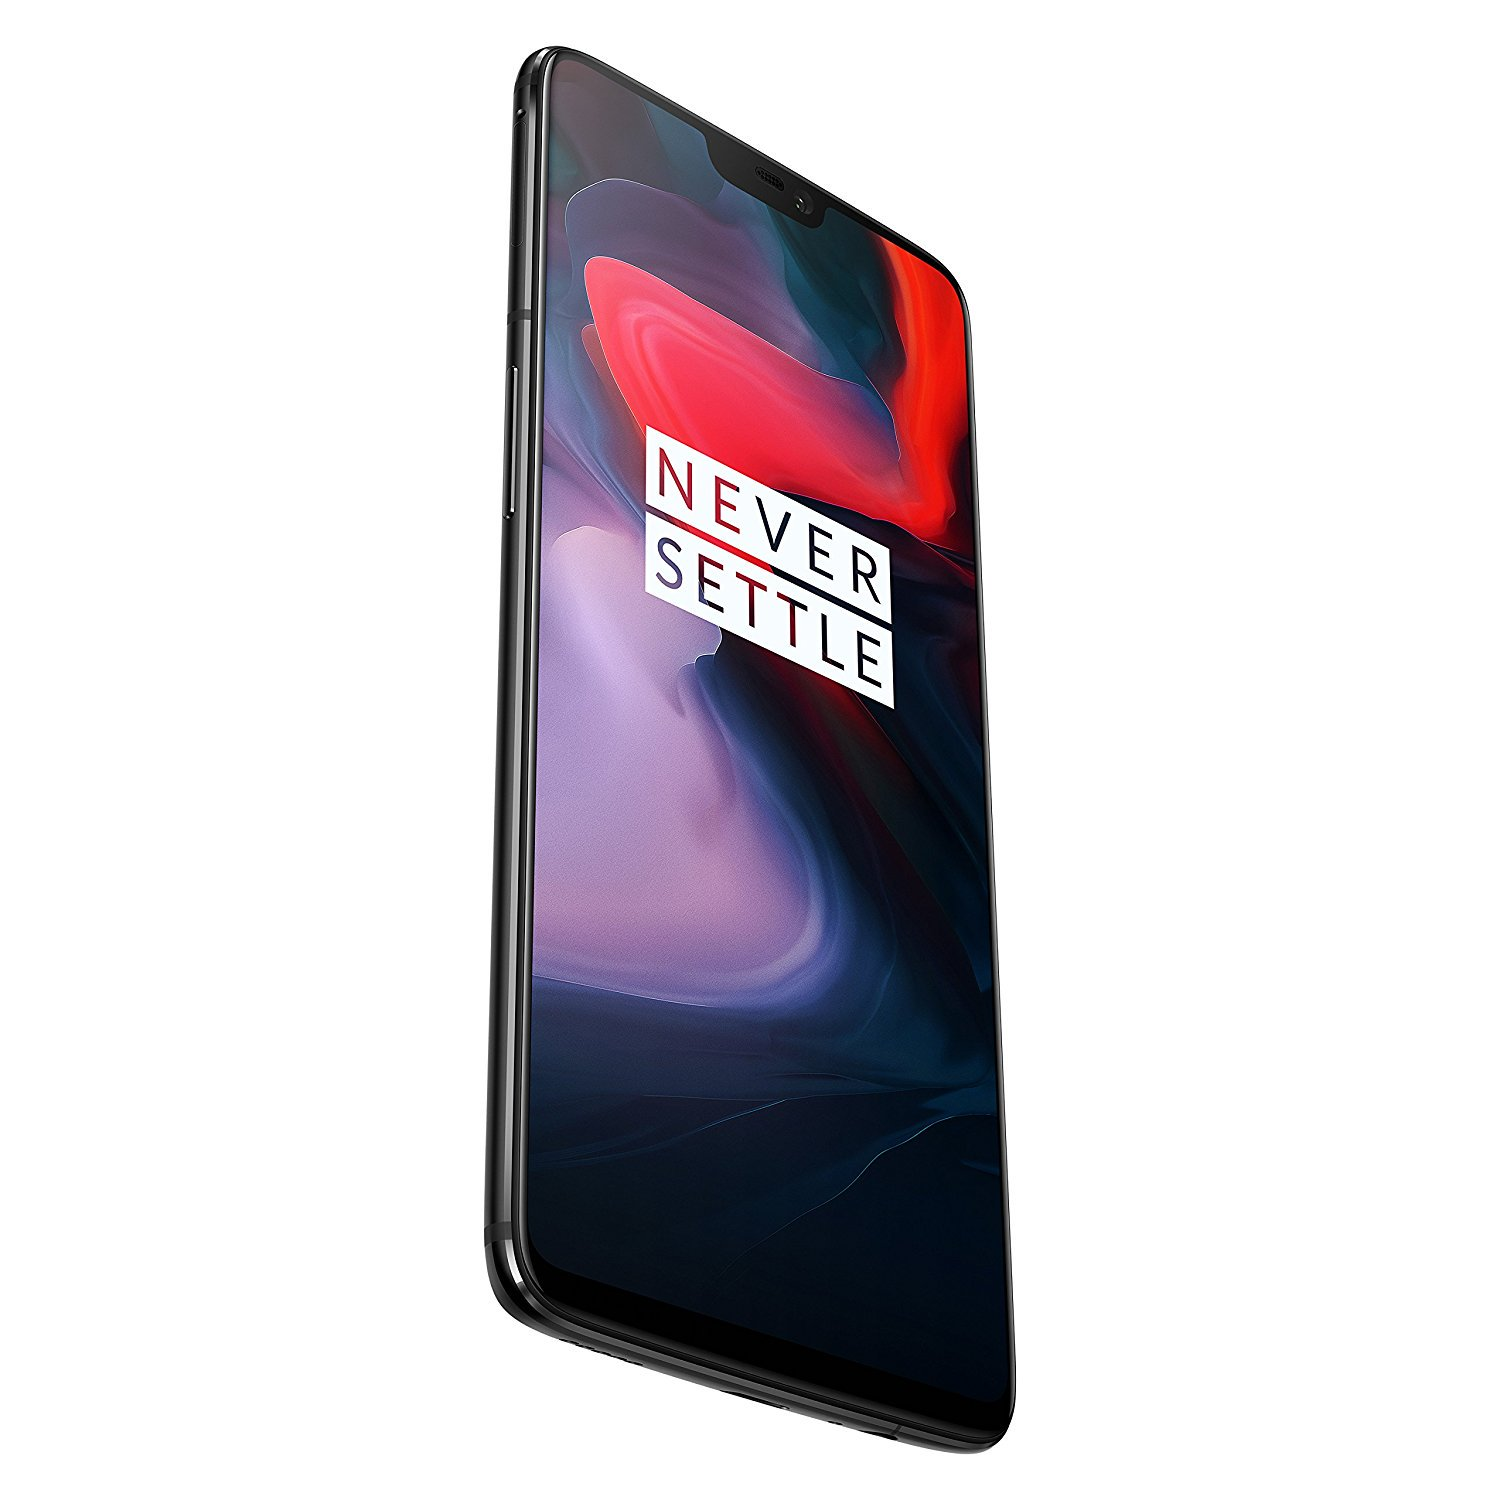 Amazon Listing reveals everything about the OnePlus 6 7